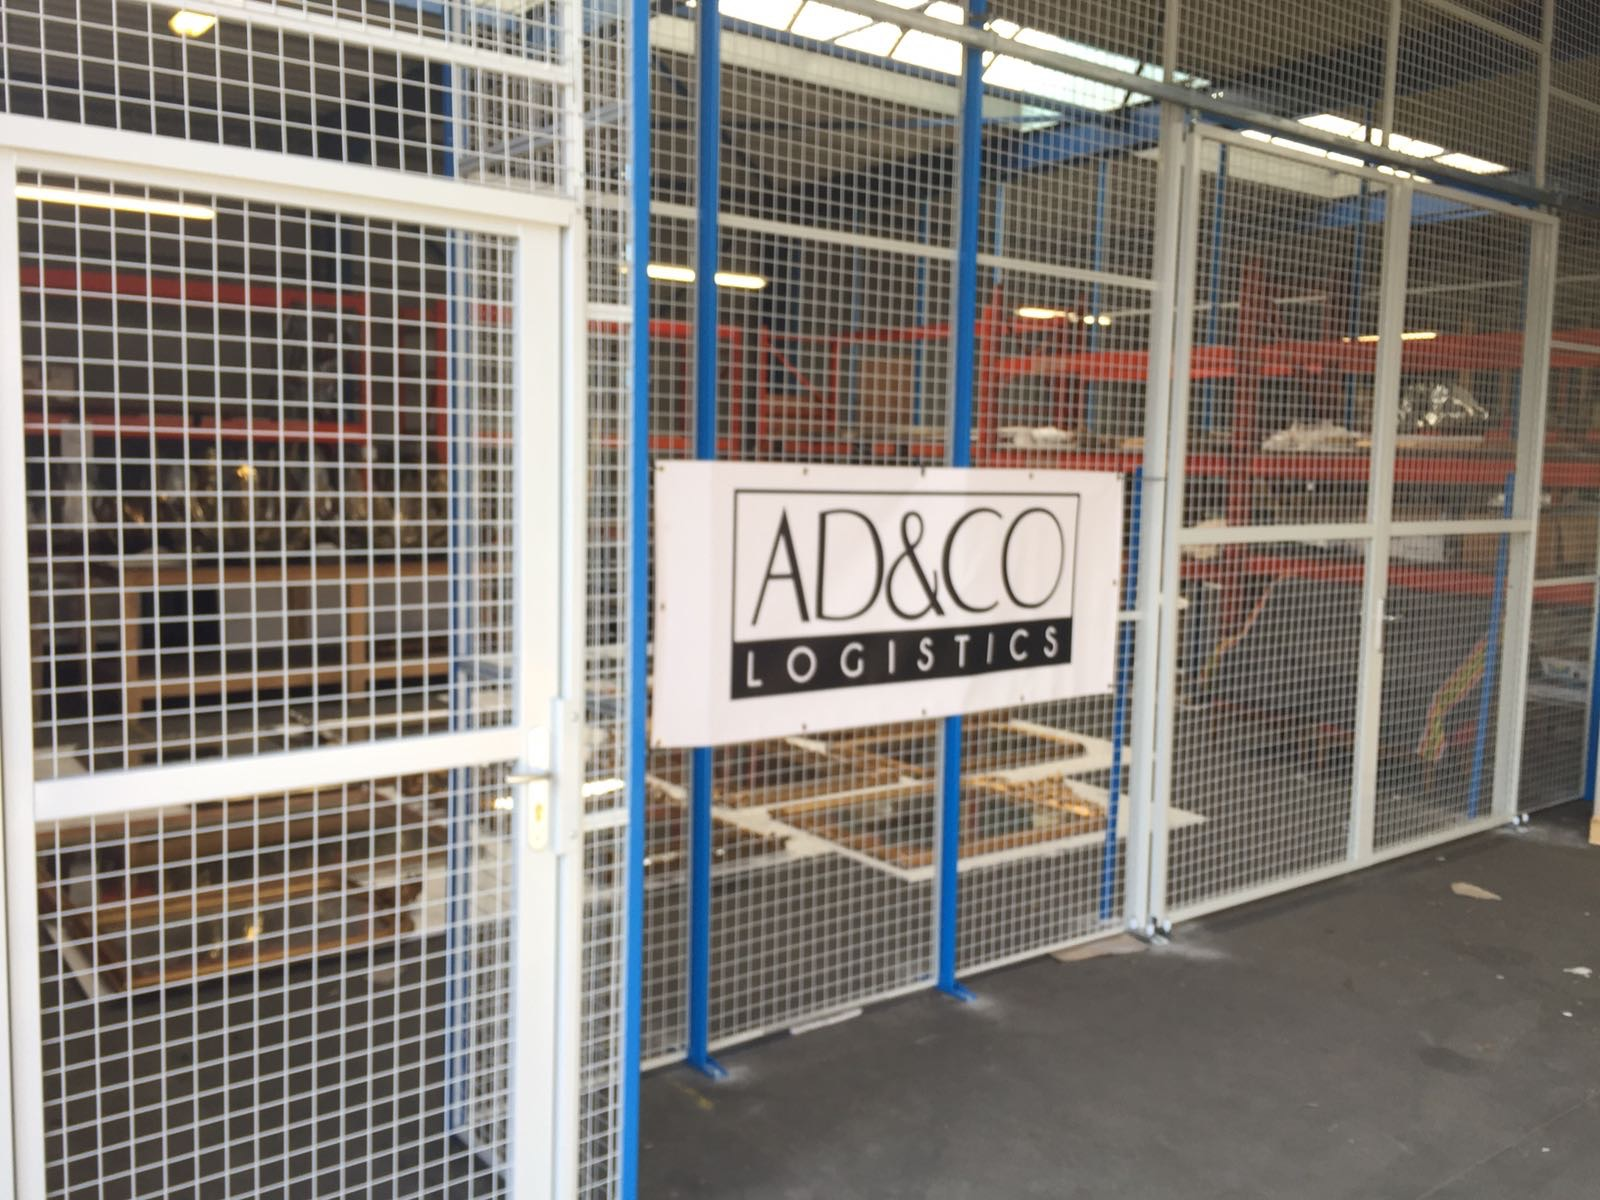 AD&CO Logistics carefully manages and tracks your goods from pickup to warehouse to shipment to delivery